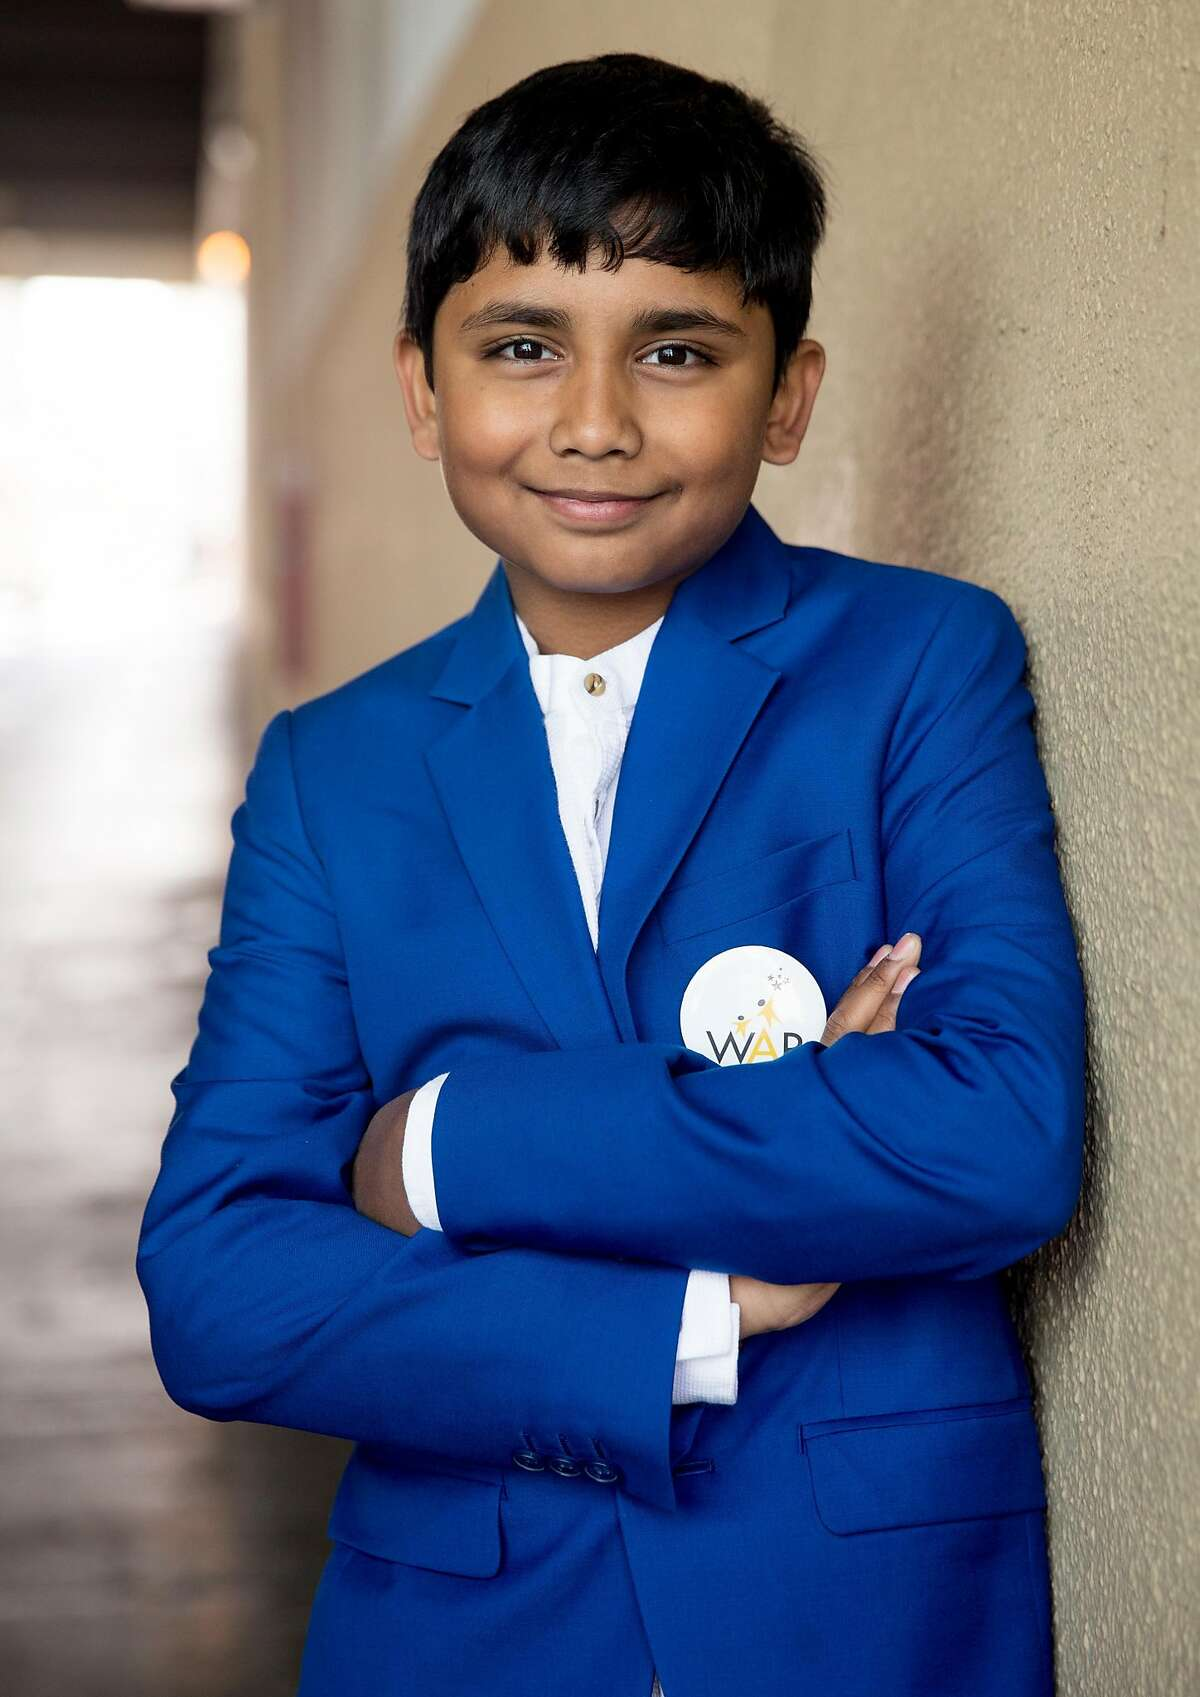 Child singer Yathaarth Murthy of India poses for a portrait along 5th Street Friday, April 27, 2018 in San Francisco, Calif.